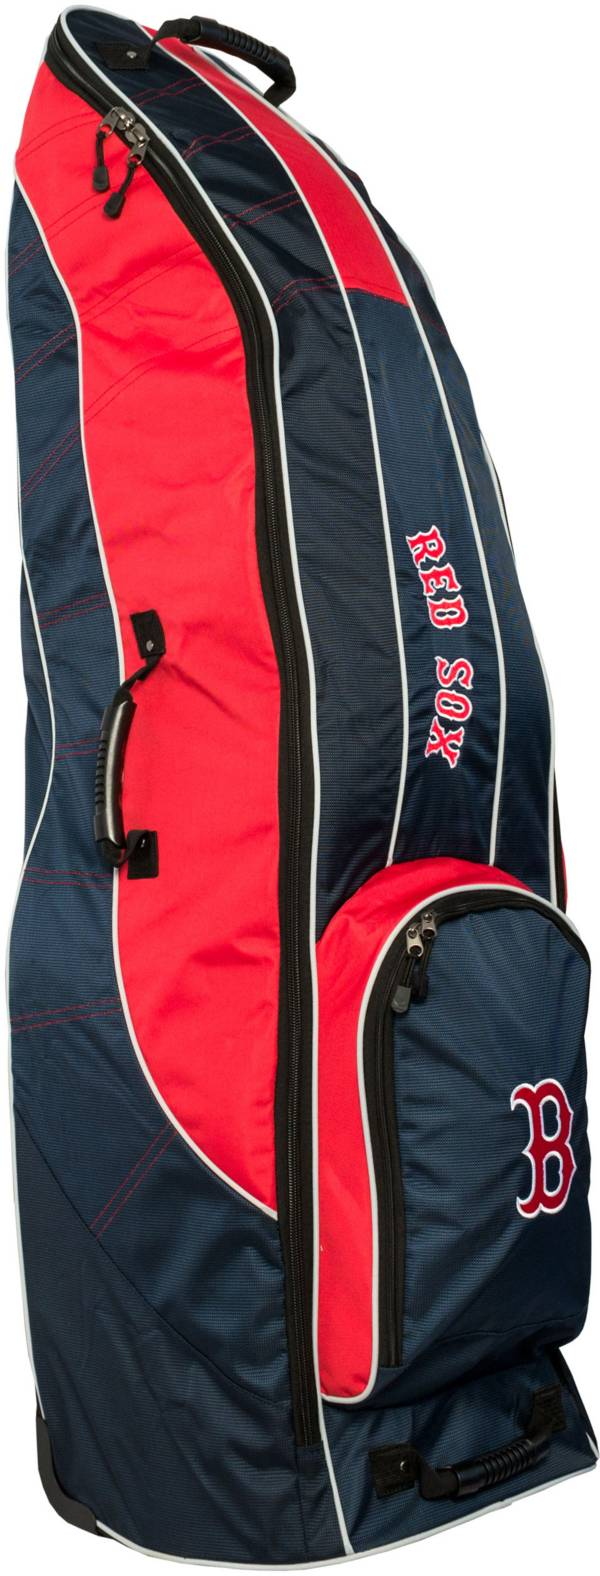 Team Golf Boston Red Sox Travel Cover product image